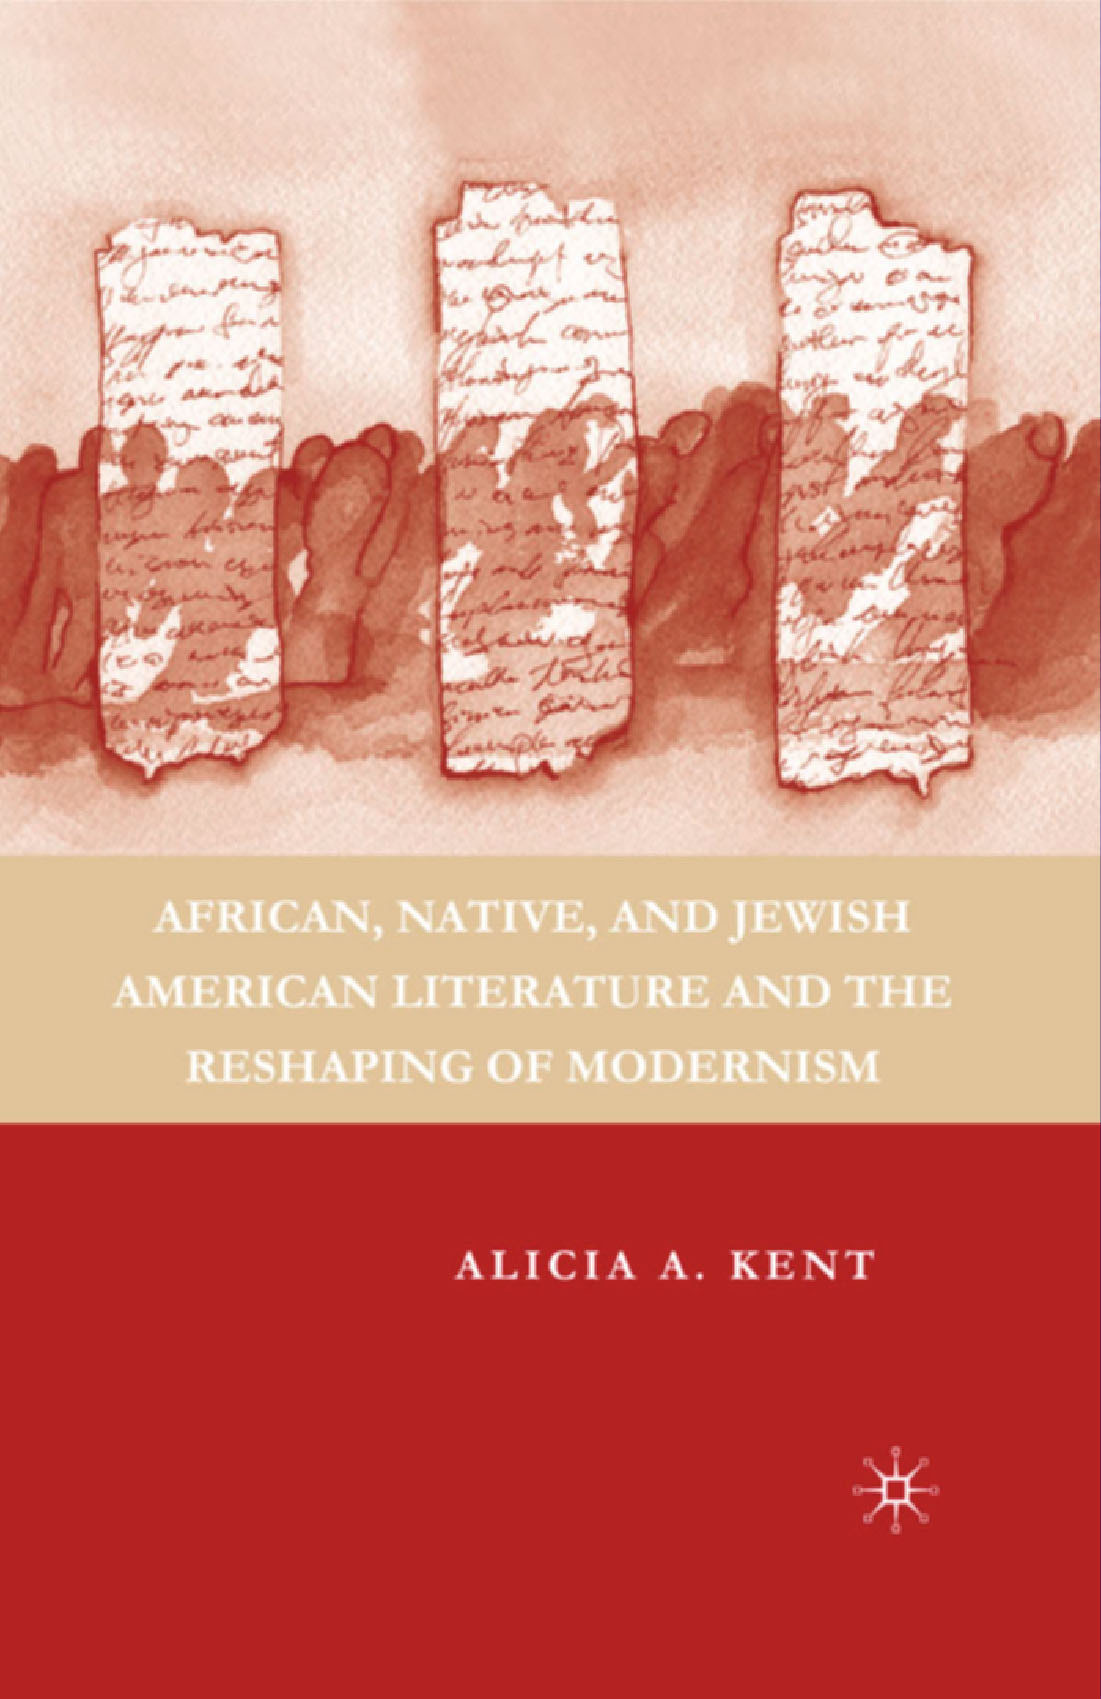 Kent, Alicia A. - African, Native, and Jewish American Literature and the Reshaping of Modernism, ebook